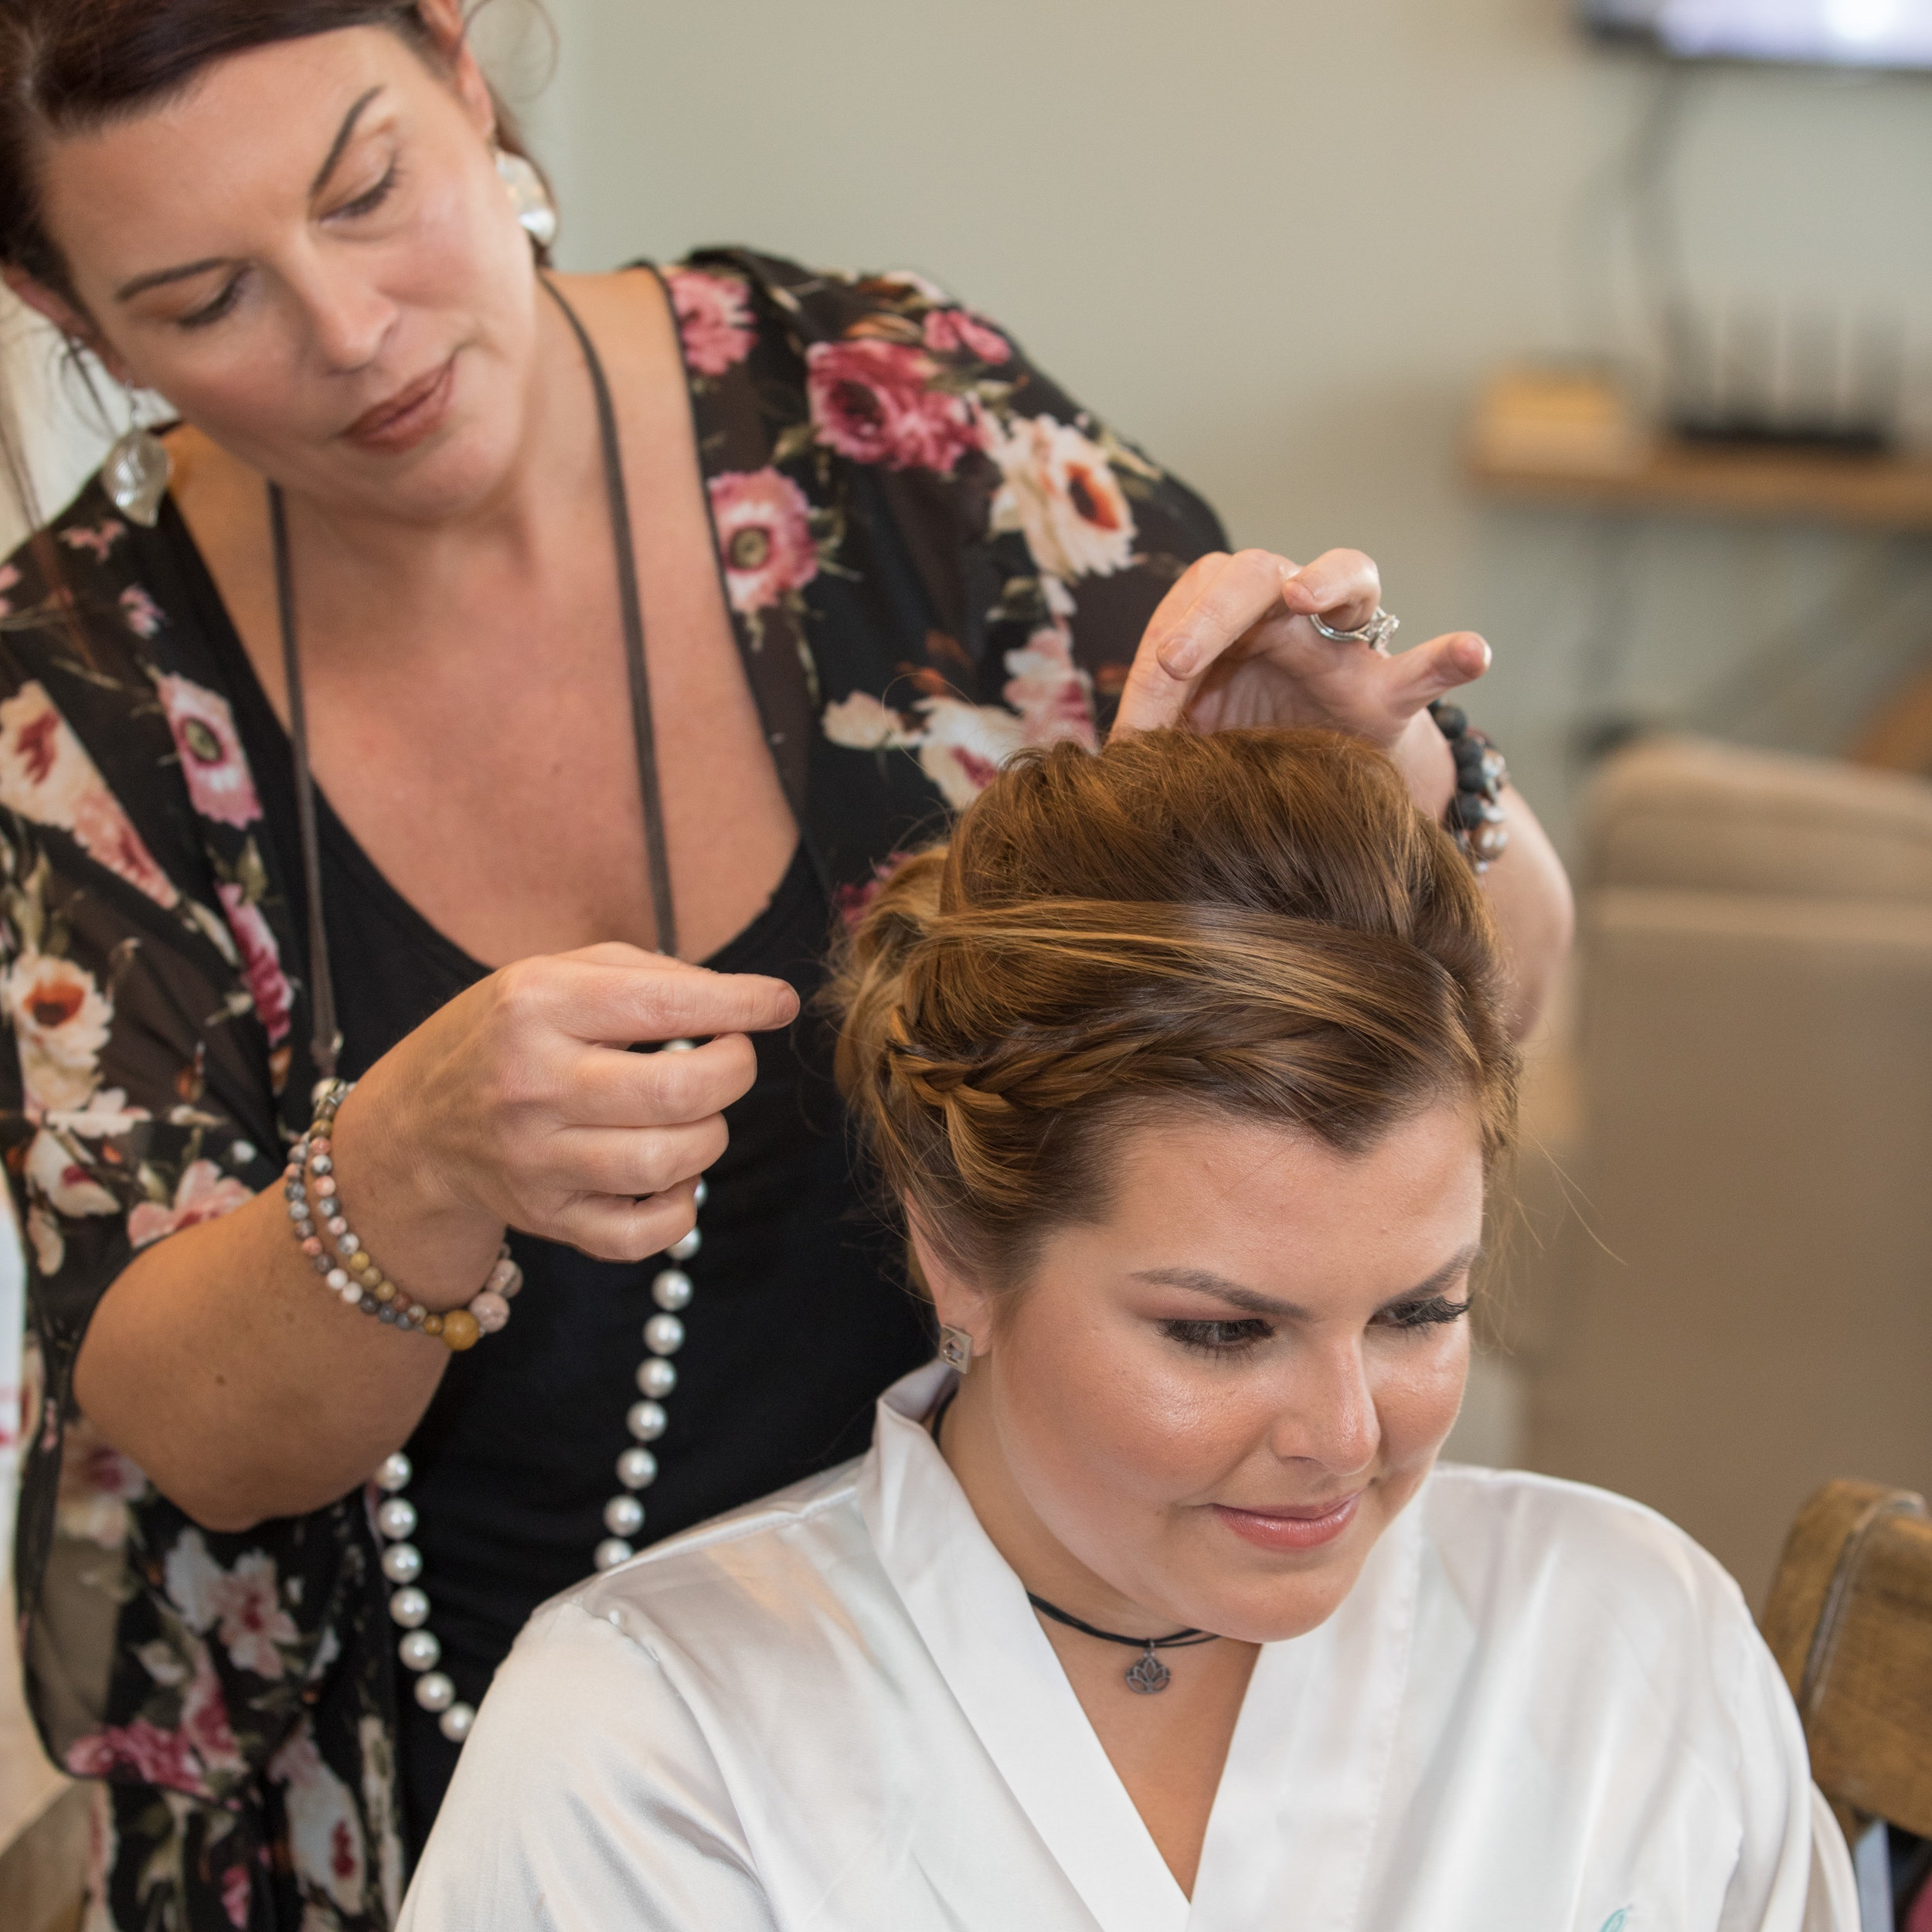 Mary is a celebrity hair and make-up artist